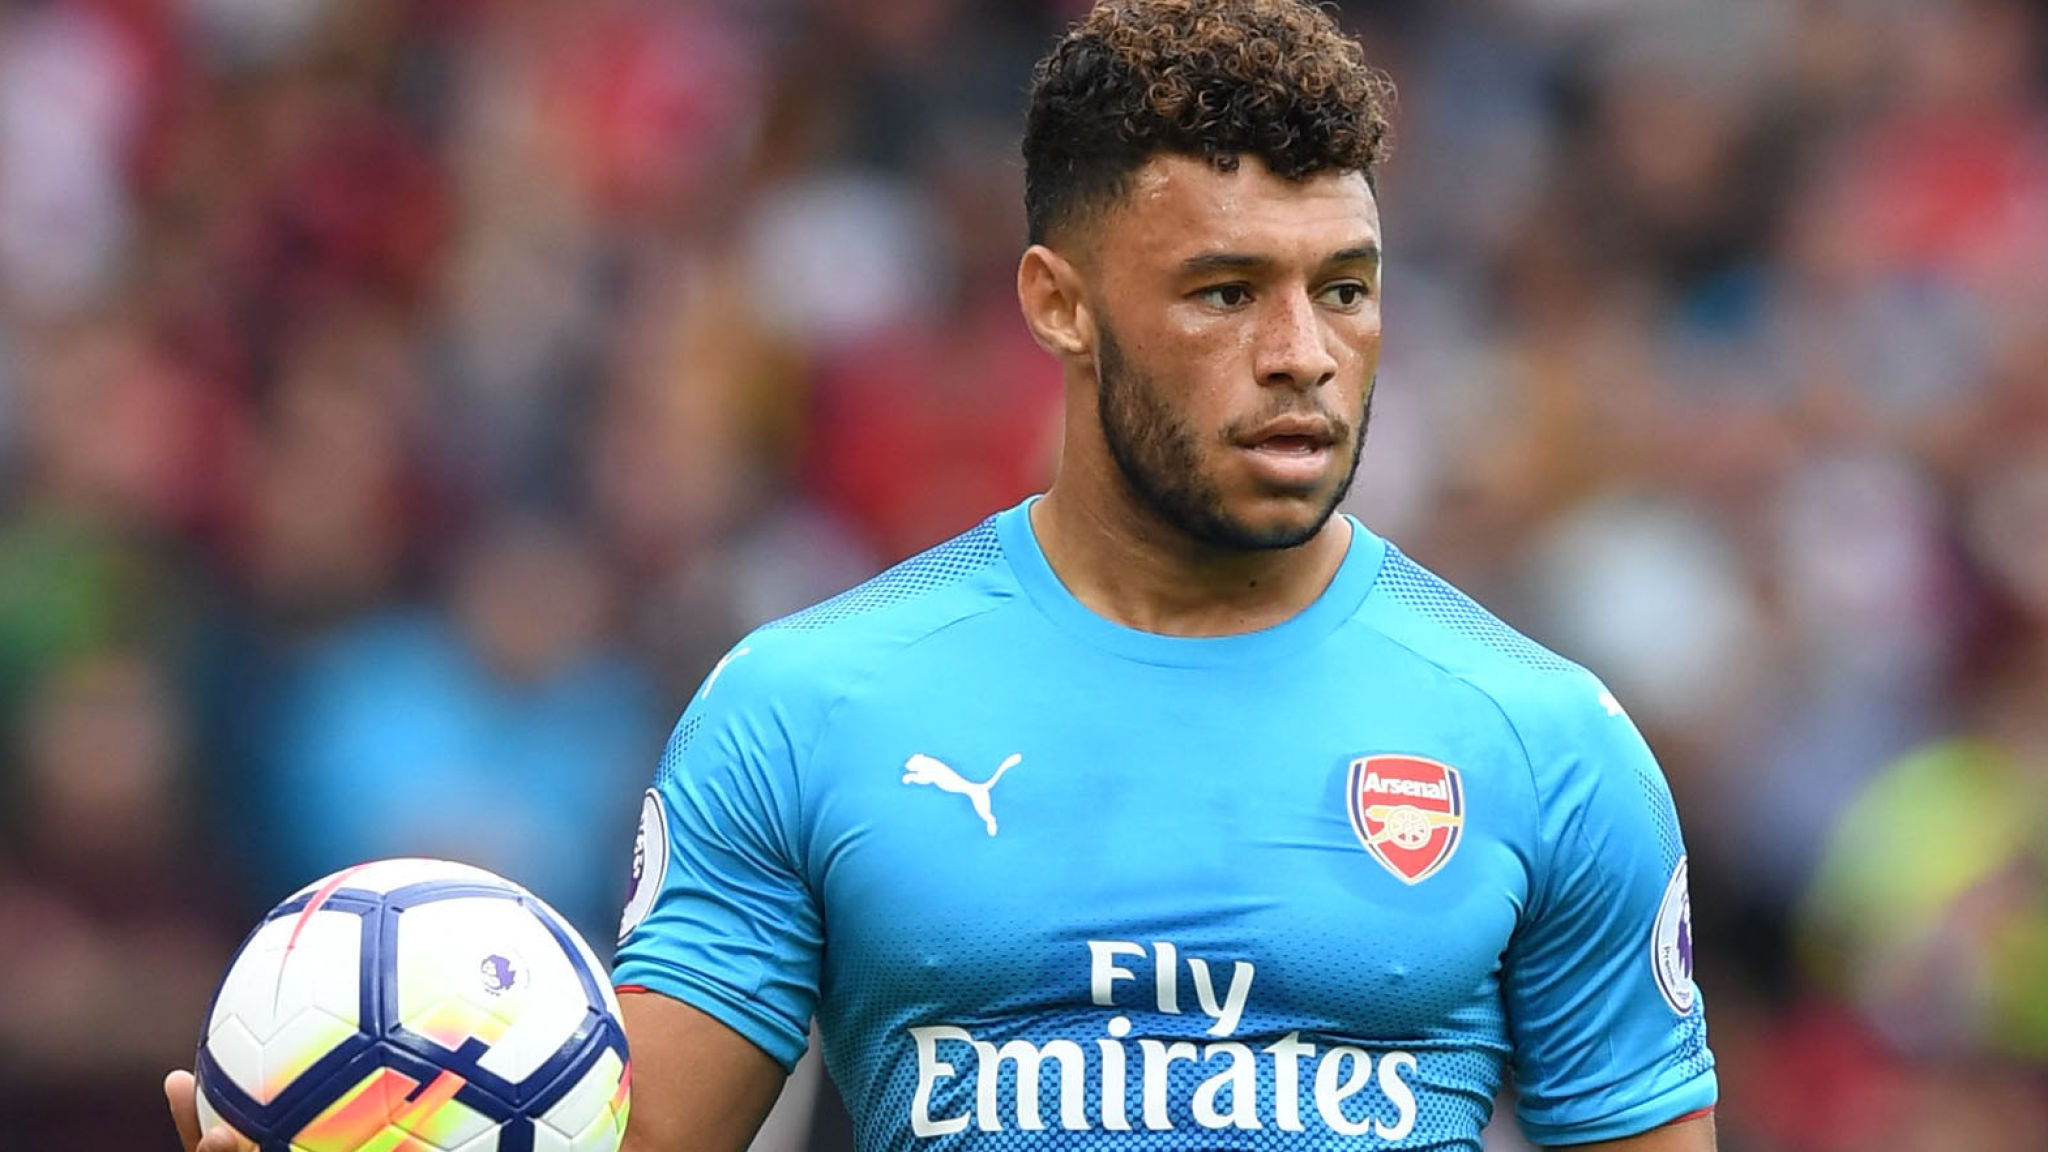 Arsenal midfielder Alex Oxlade-Chamberlain rejects Chelsea and wants Liverpool move